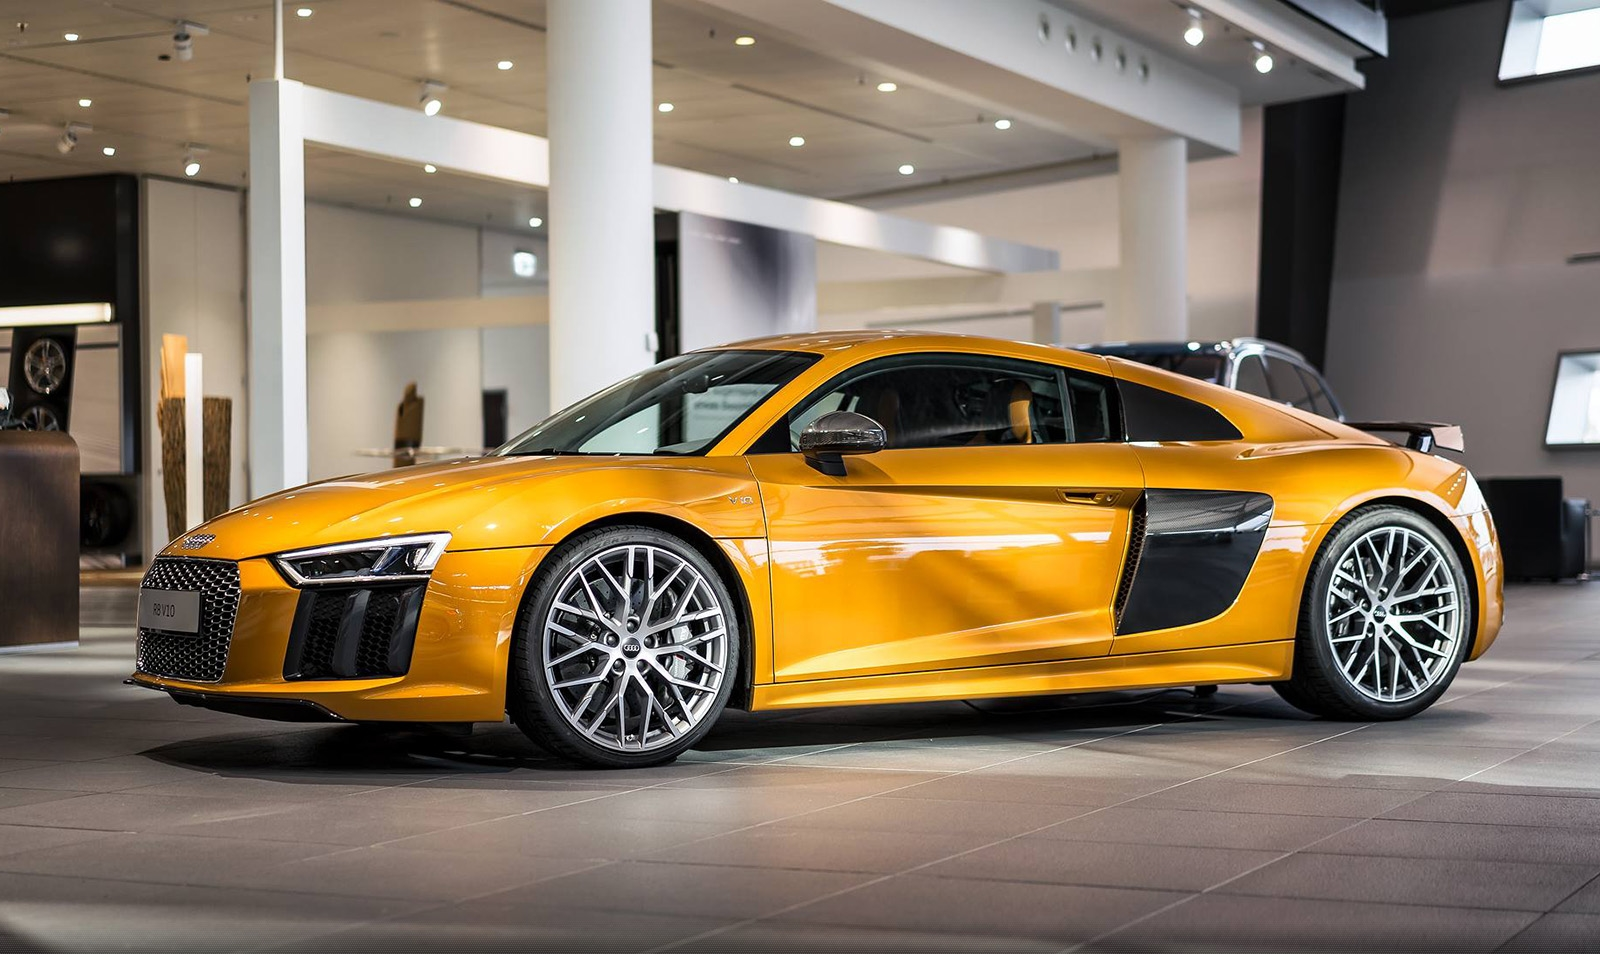 audi-exclusive-r8-v10-plus-orange-pearleffect-395.jpg